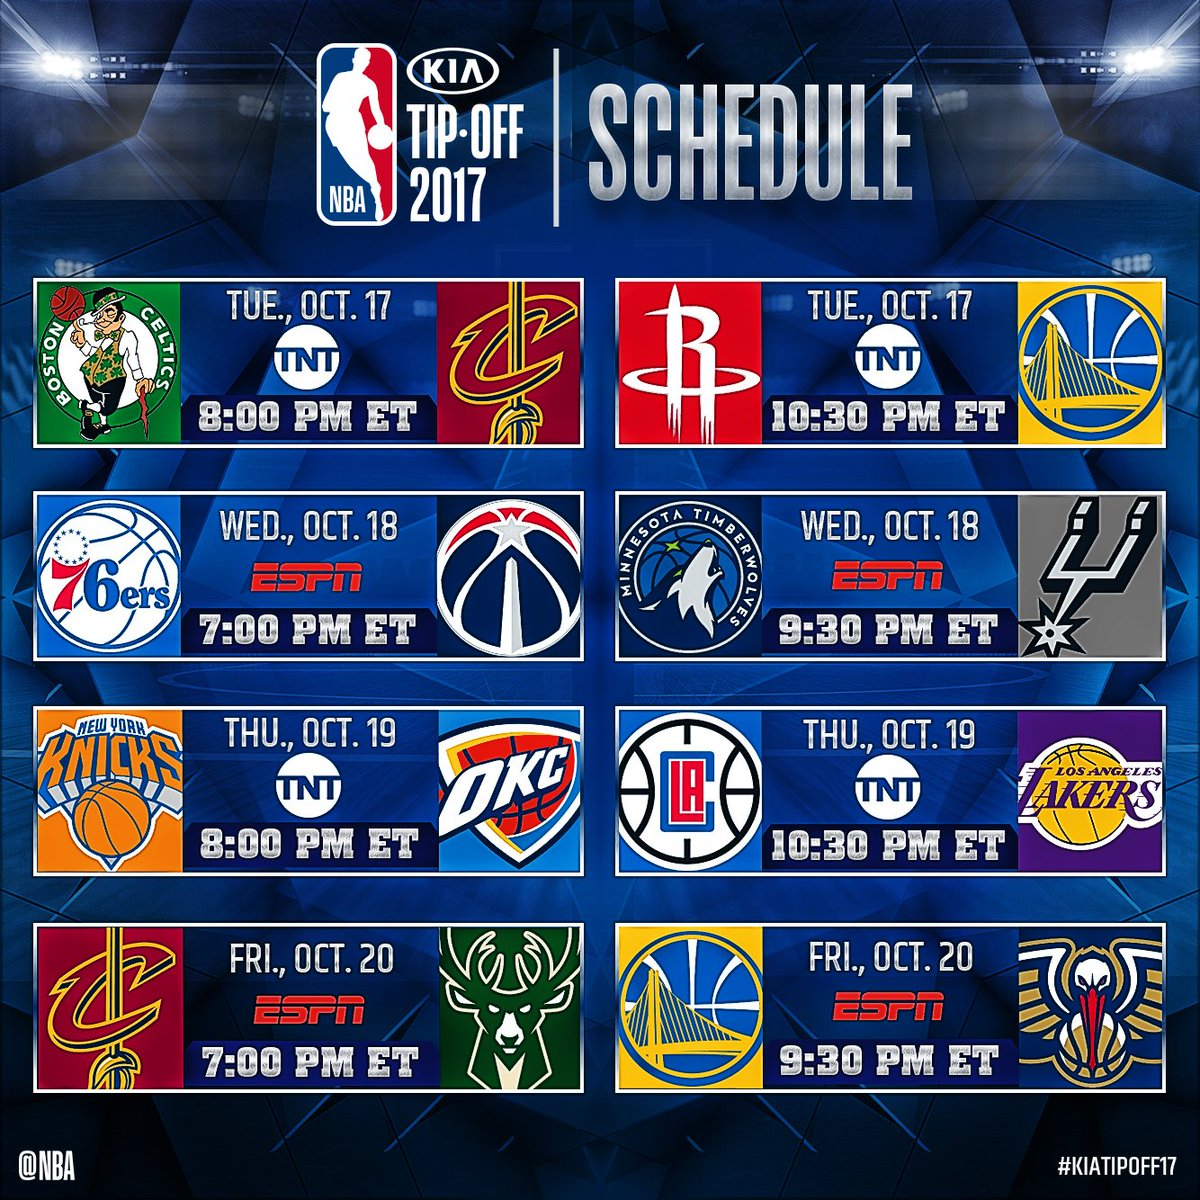 nba on twitter the kiatipoff17 national tv schedule 10 17 bos cle hou gsw 10 18 phi was min sas 10 19 nyk okc lac lal 10 20 cle mil